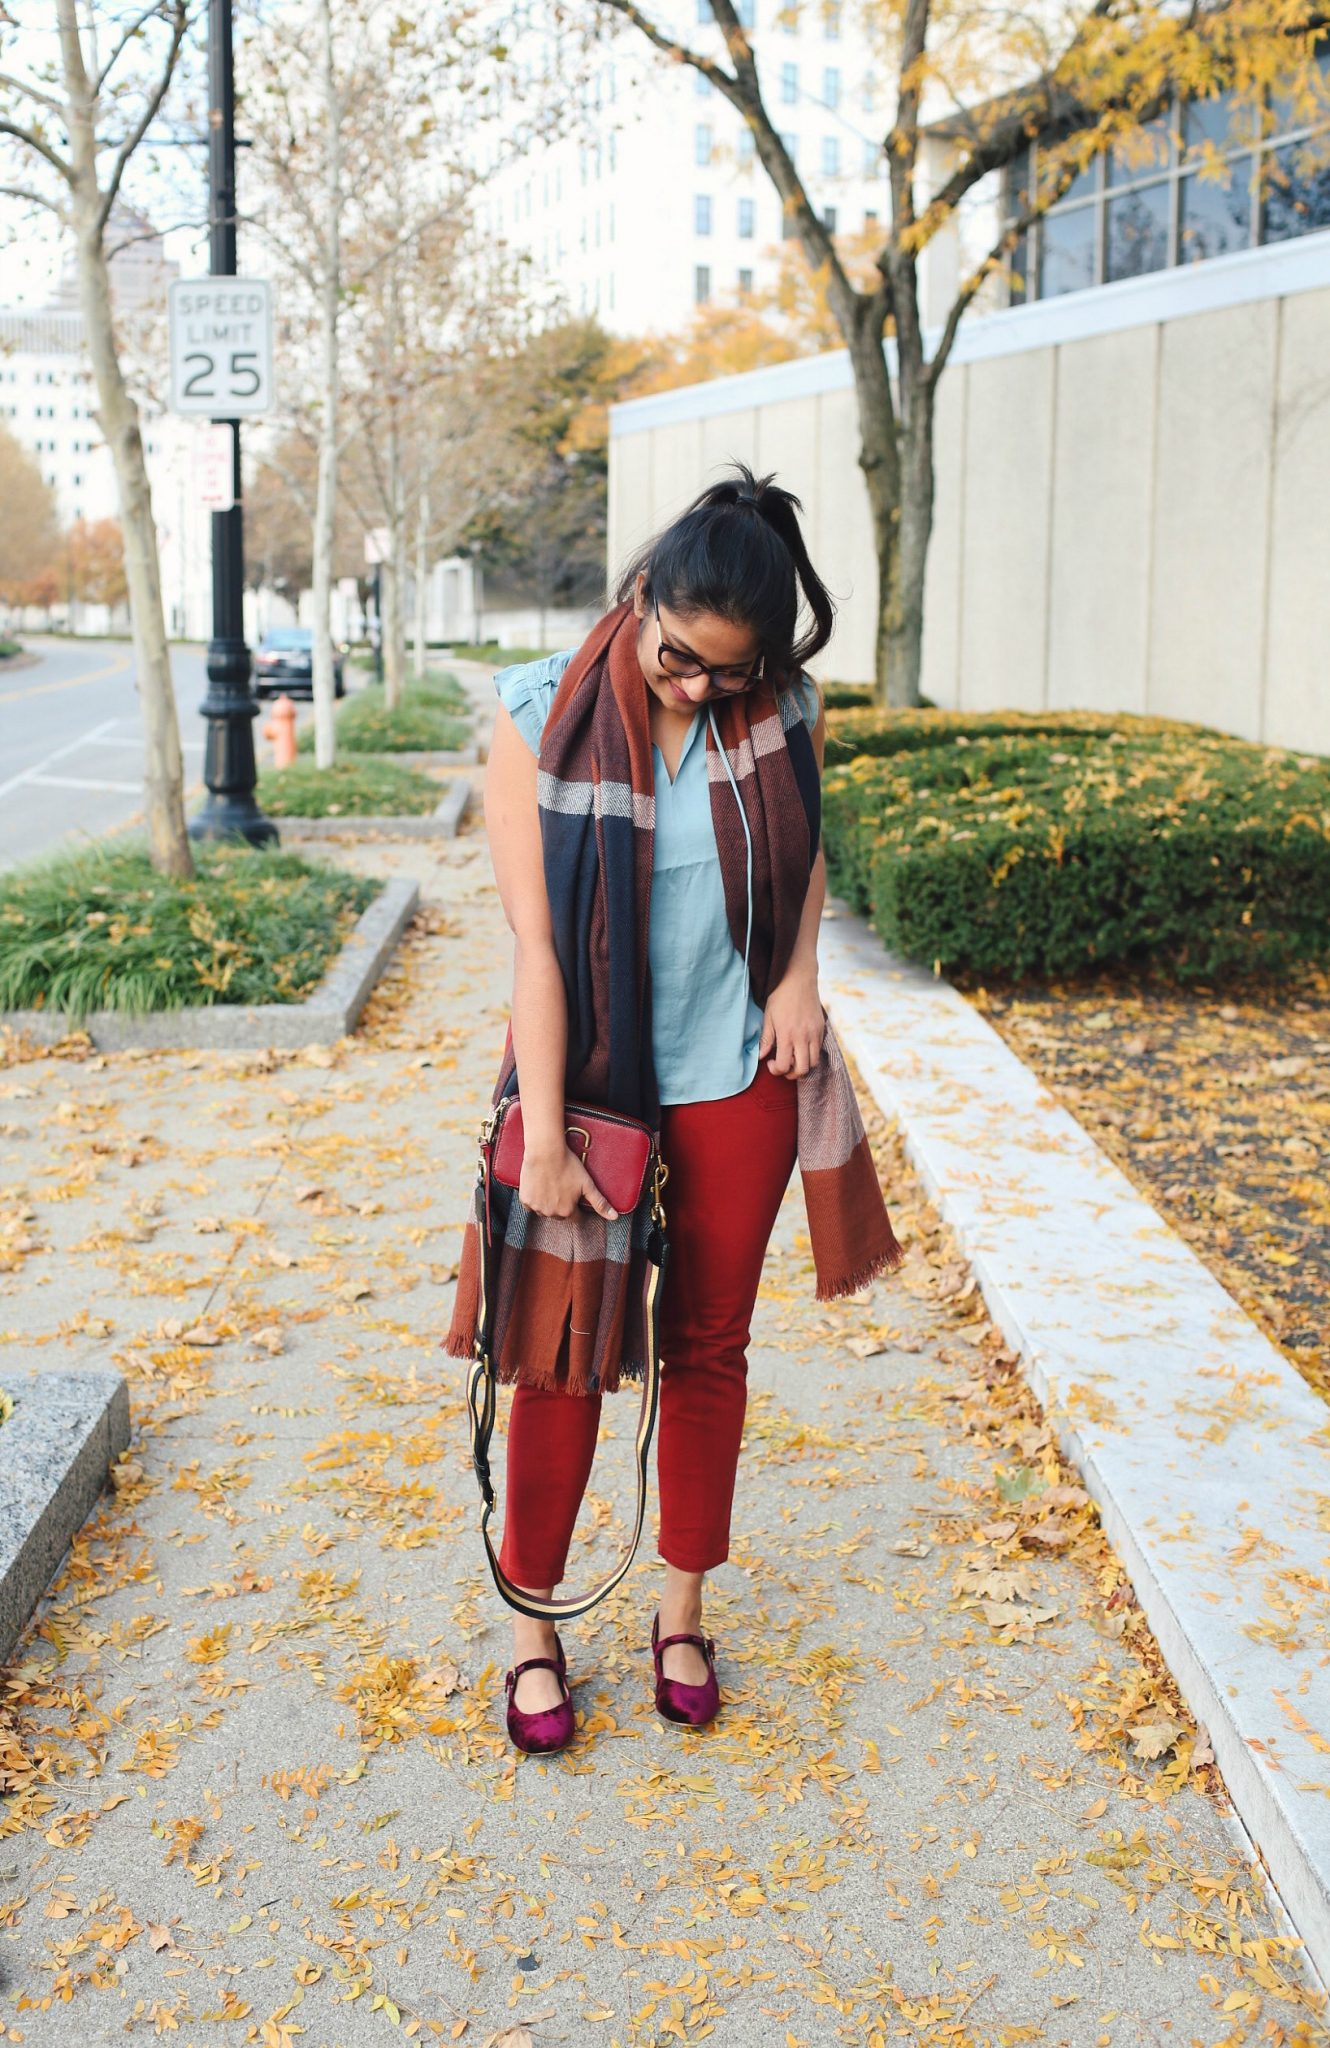 lifestyle blogger Surekha of Dreaming Loud sharing Thanksgiving fall colorful outfits